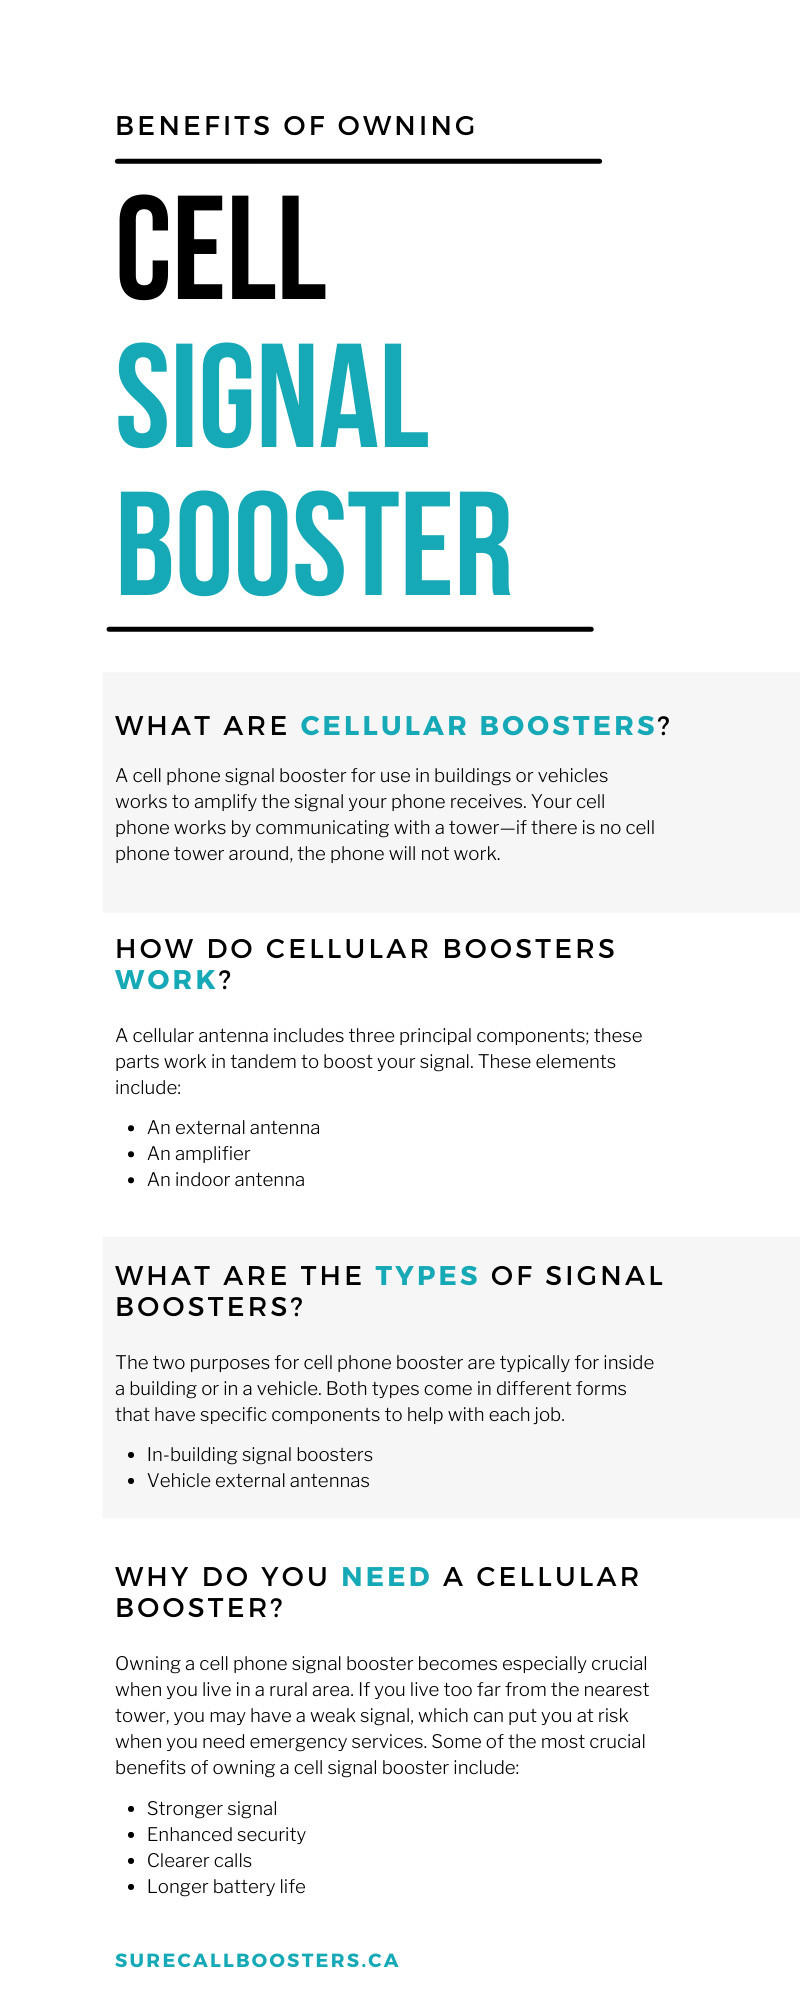 Benefits of Owning a Cell Signal Booster